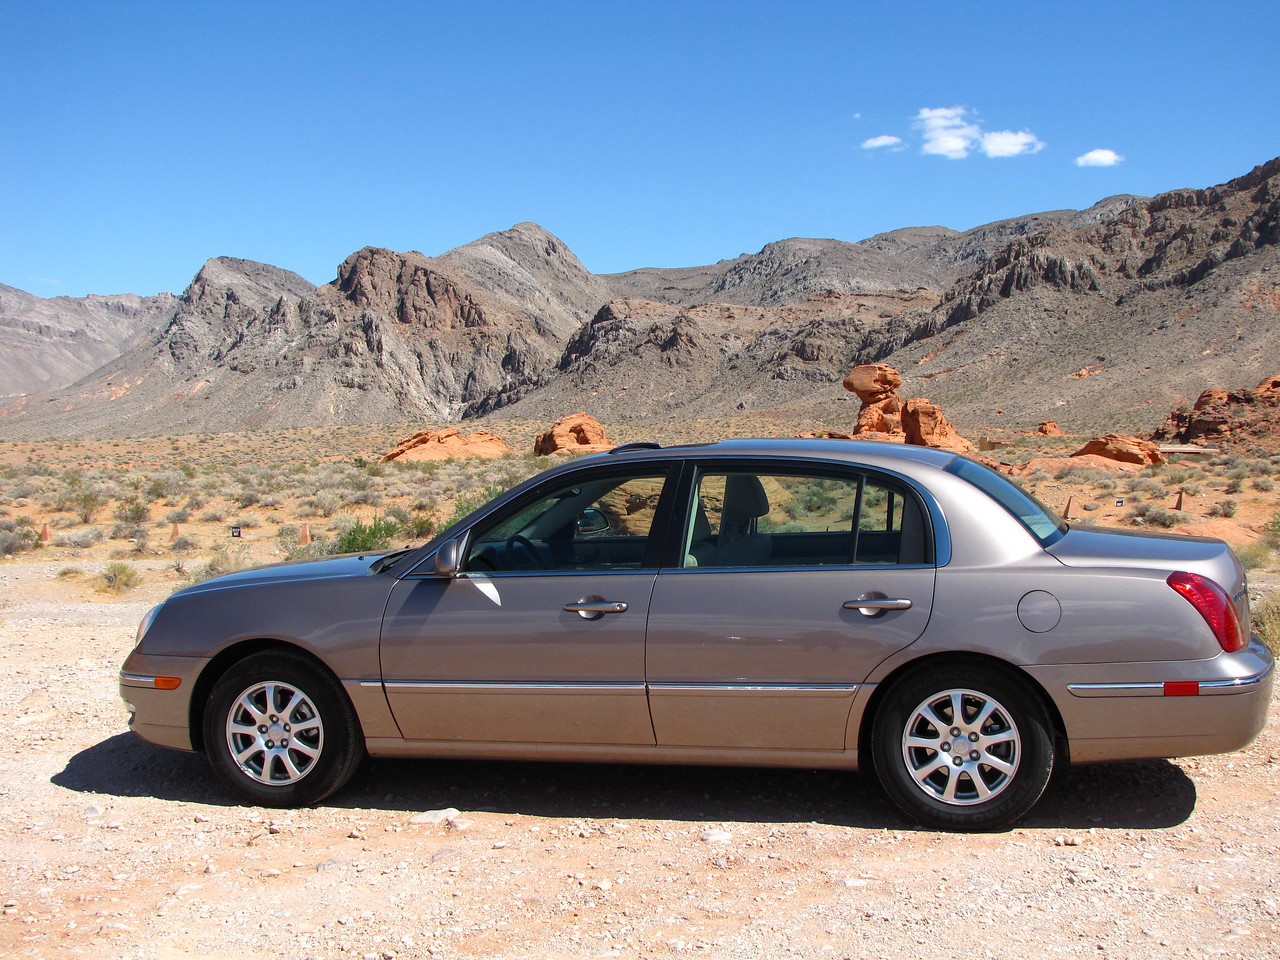 Our Kia Amanti rental car at Valley of Fire State Park.